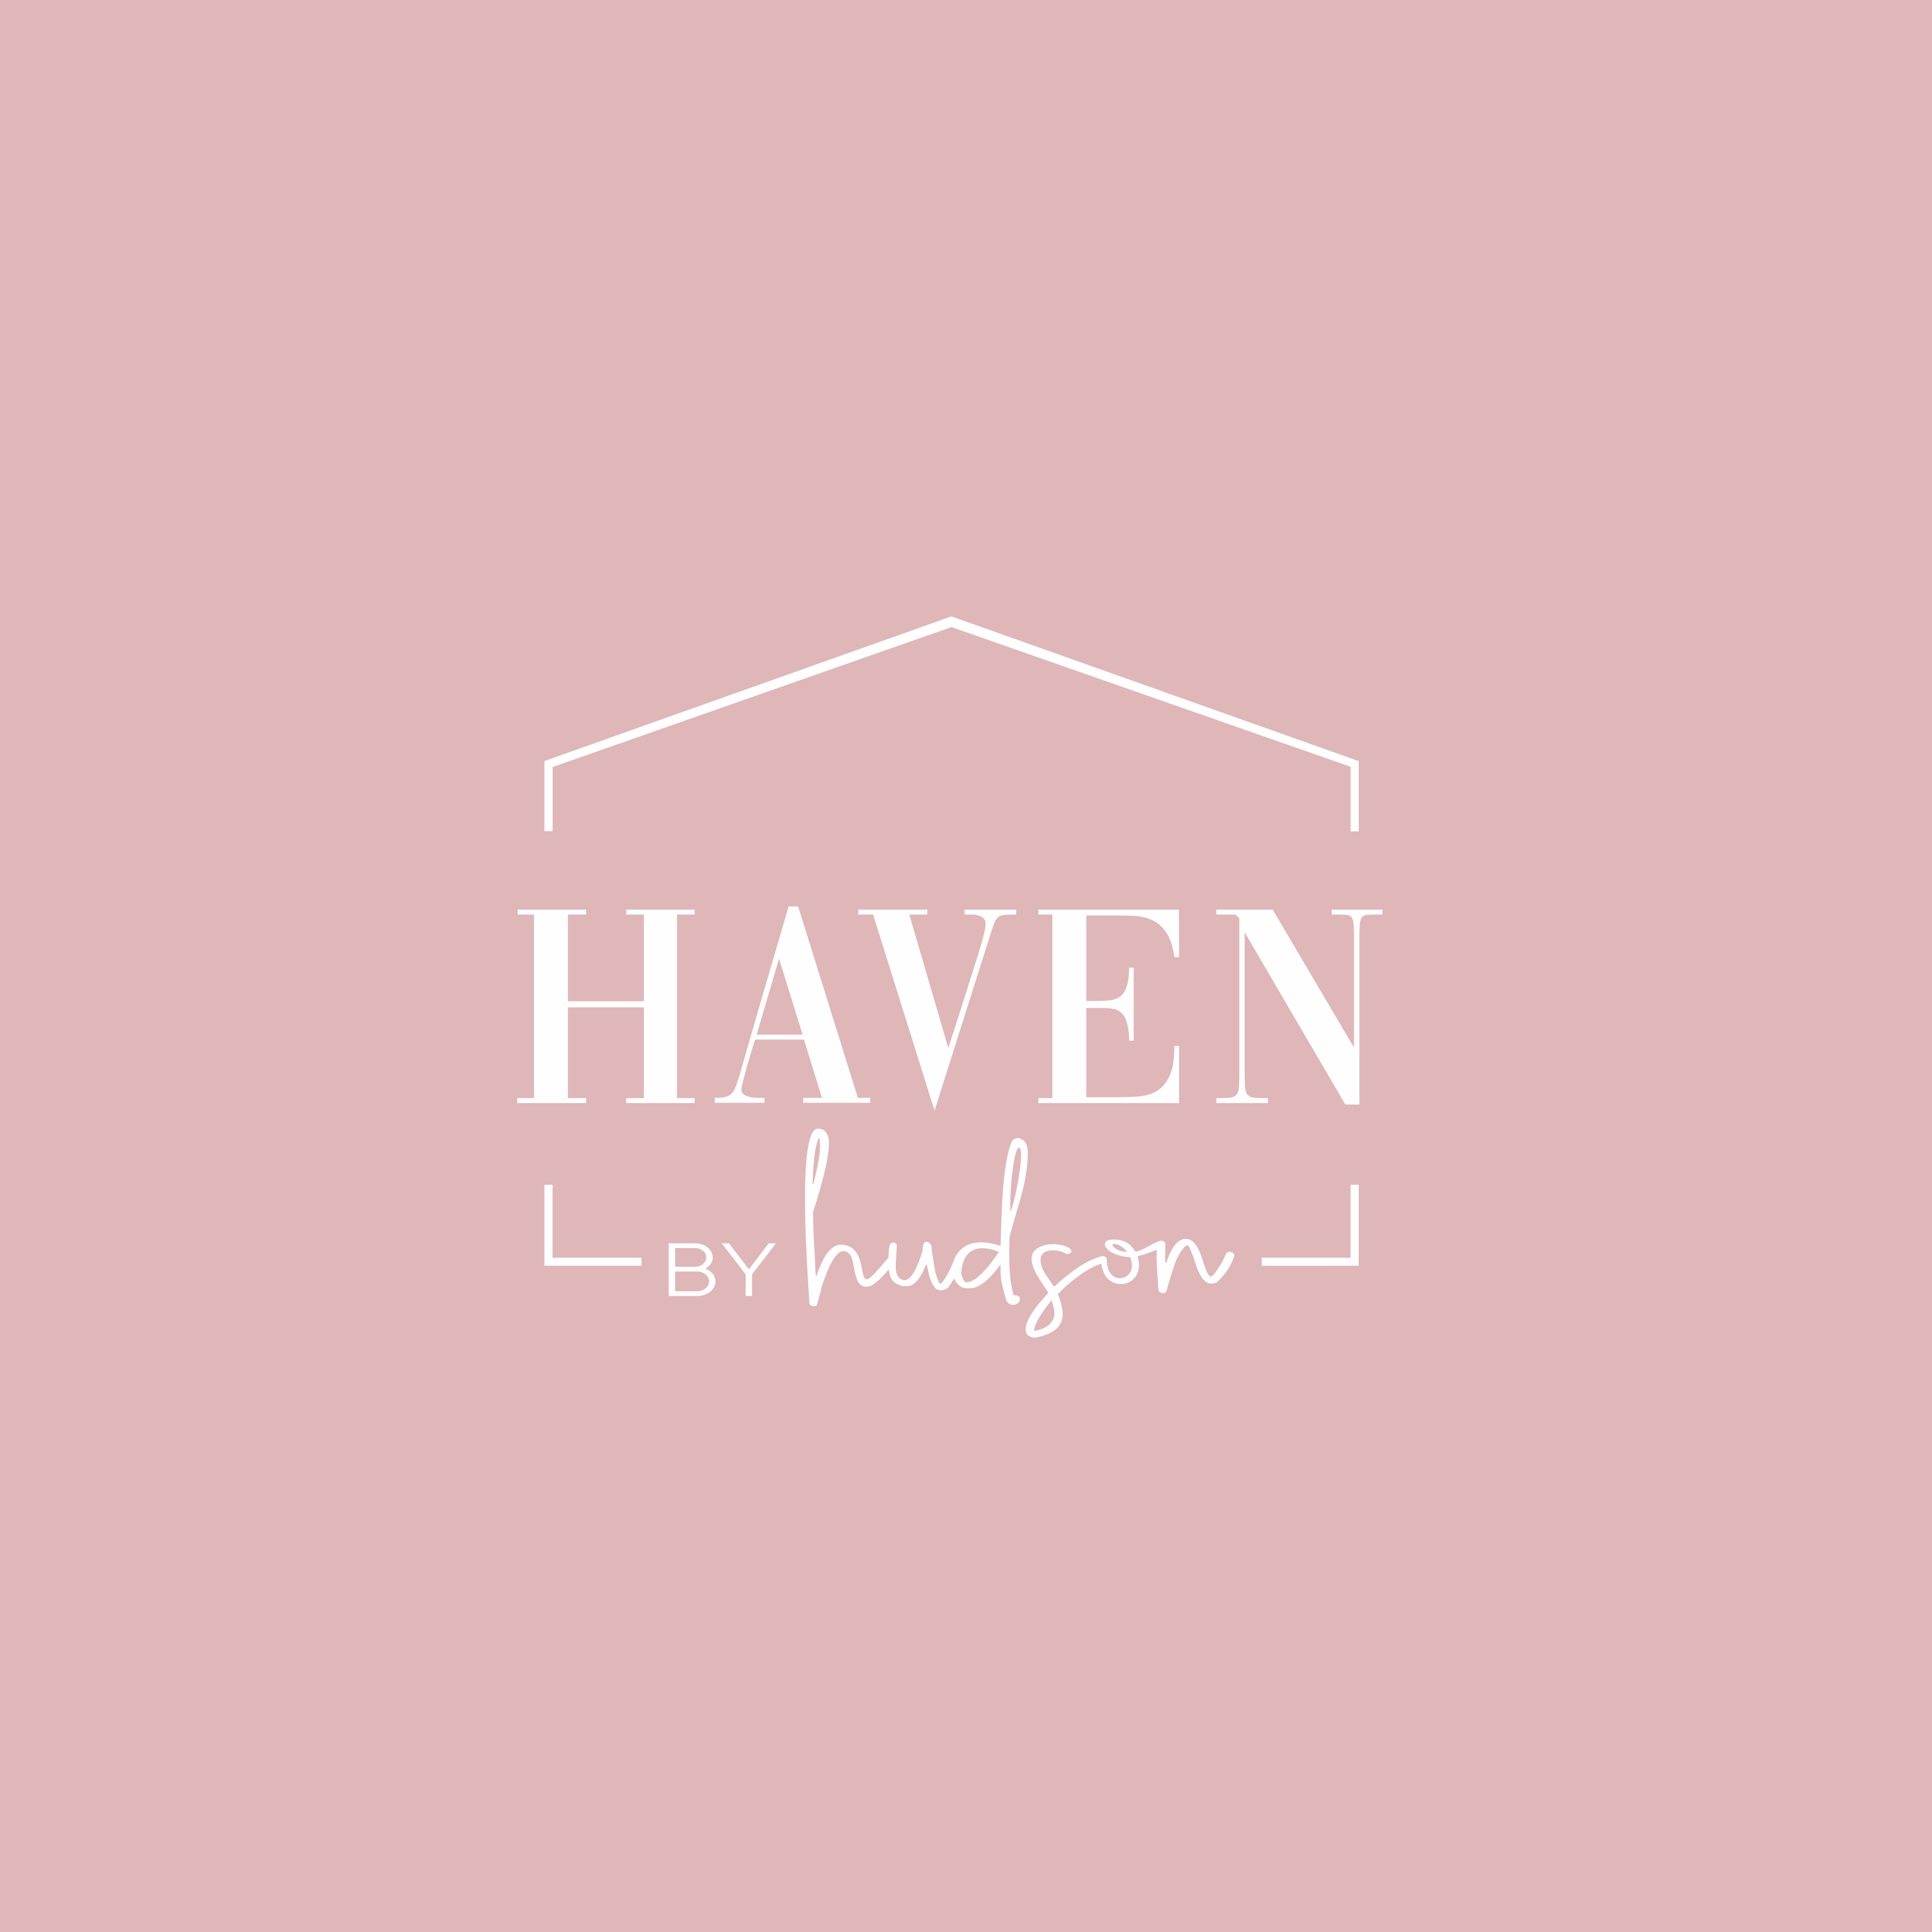 Design logo for a new contemporary homeware brand - Haven by Hudson. Stylish and simple brief!